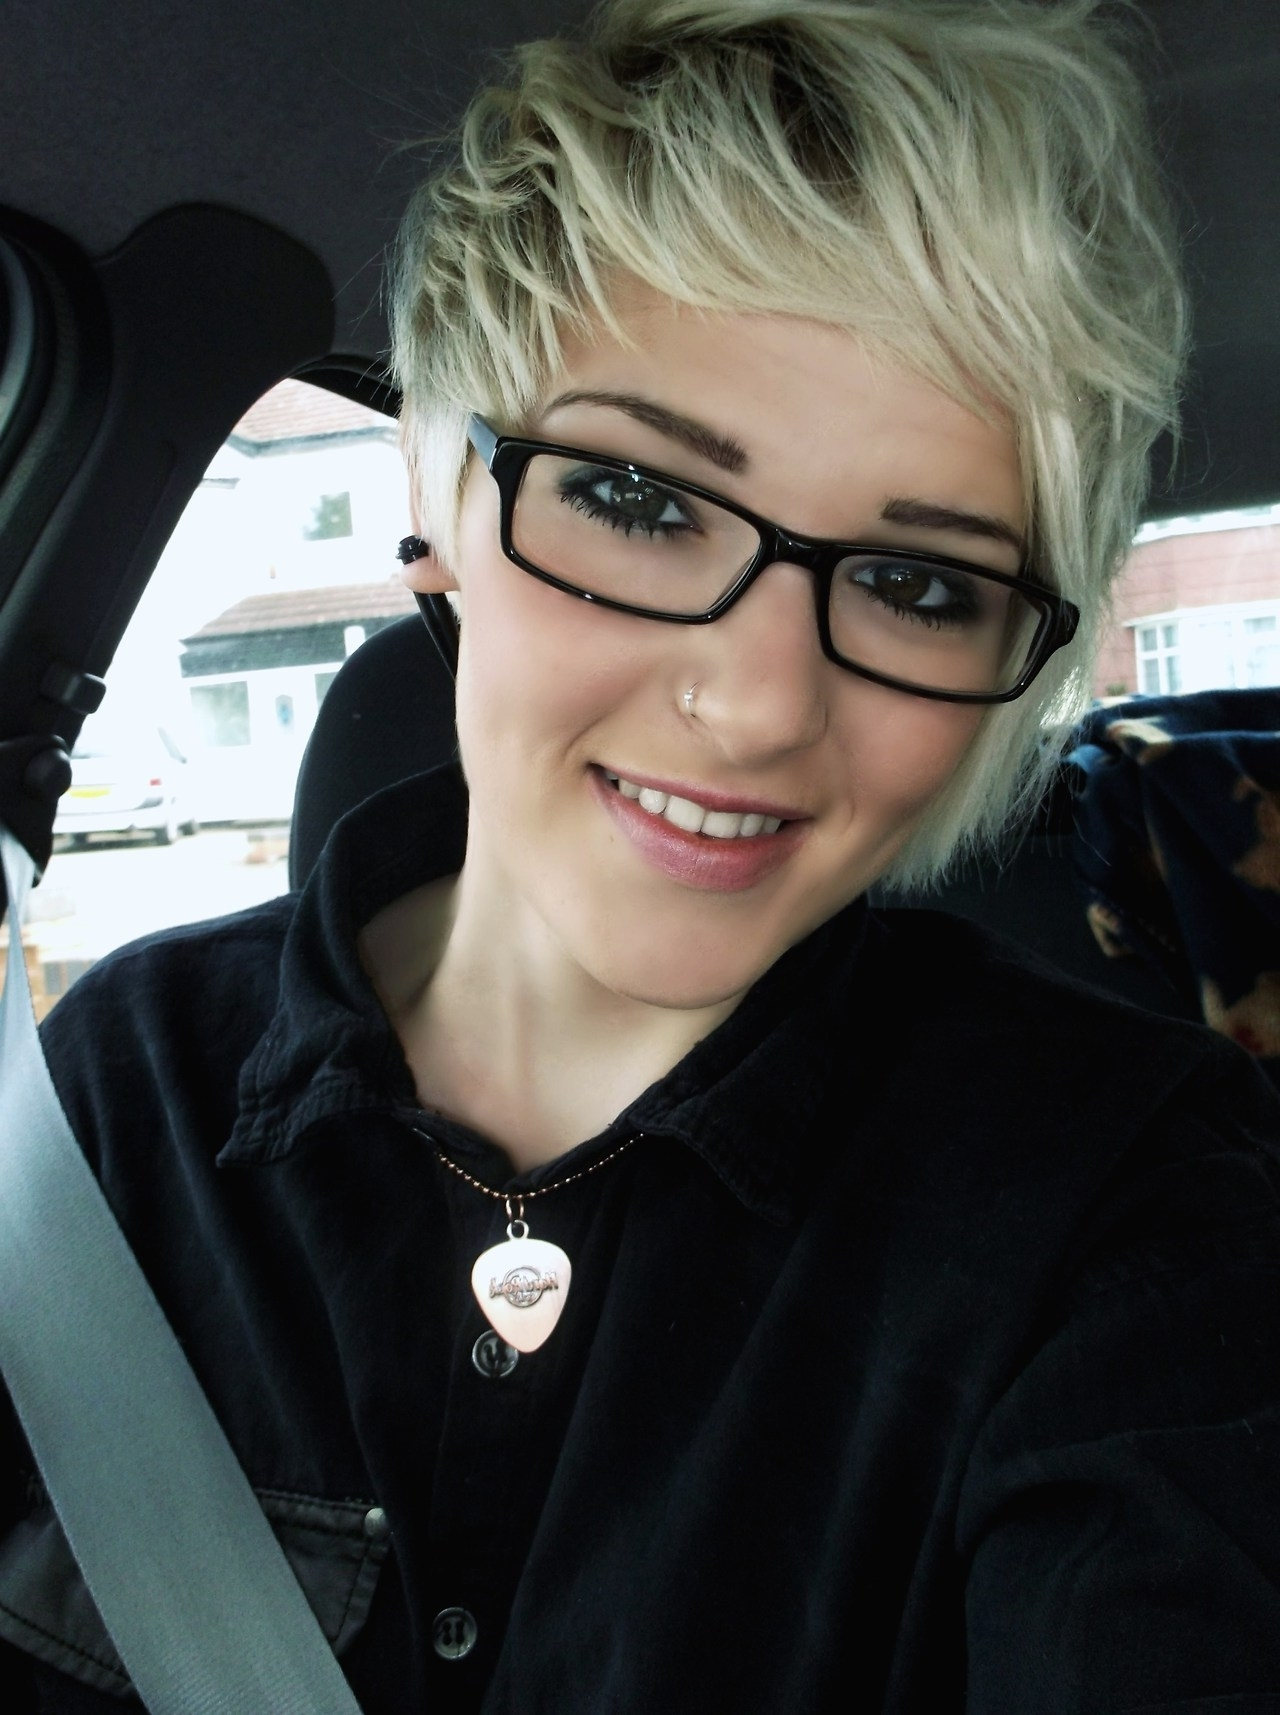 Blonde Short Hair Pixie Cut (View 5 of 15)